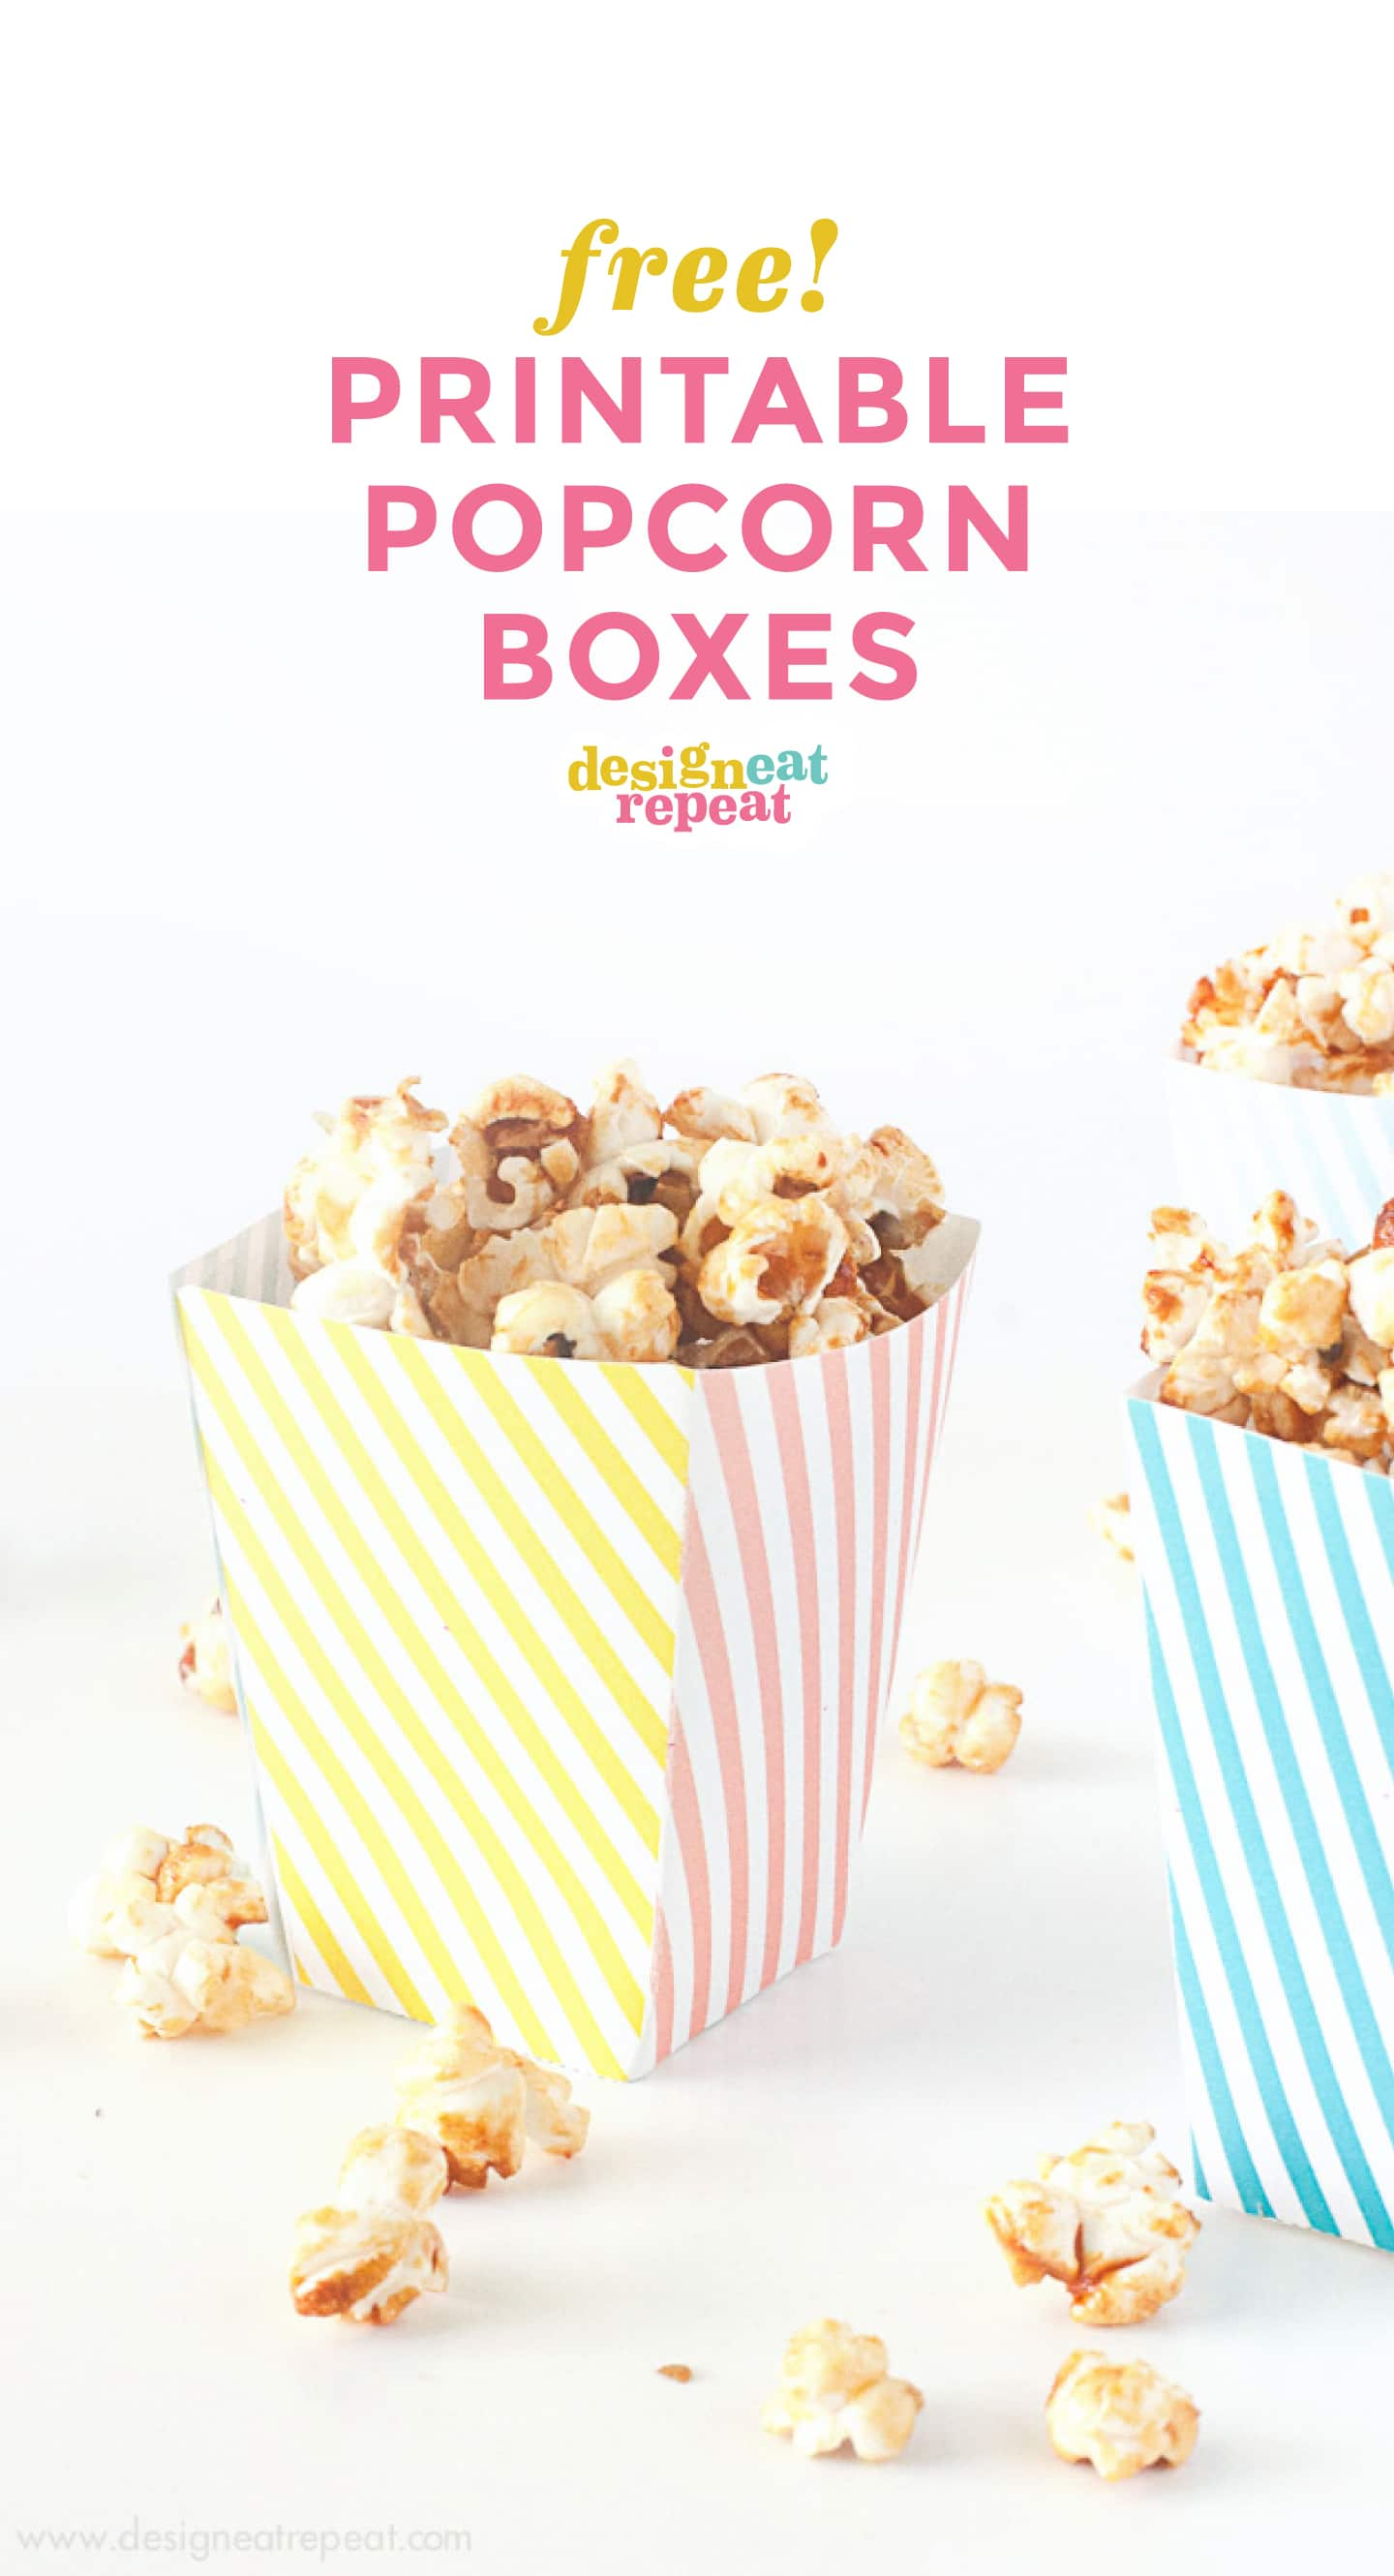 graphic about Printable Popcorn Template named Free of charge Printable Popcorn Box Template - Design and style Try to eat Repeat